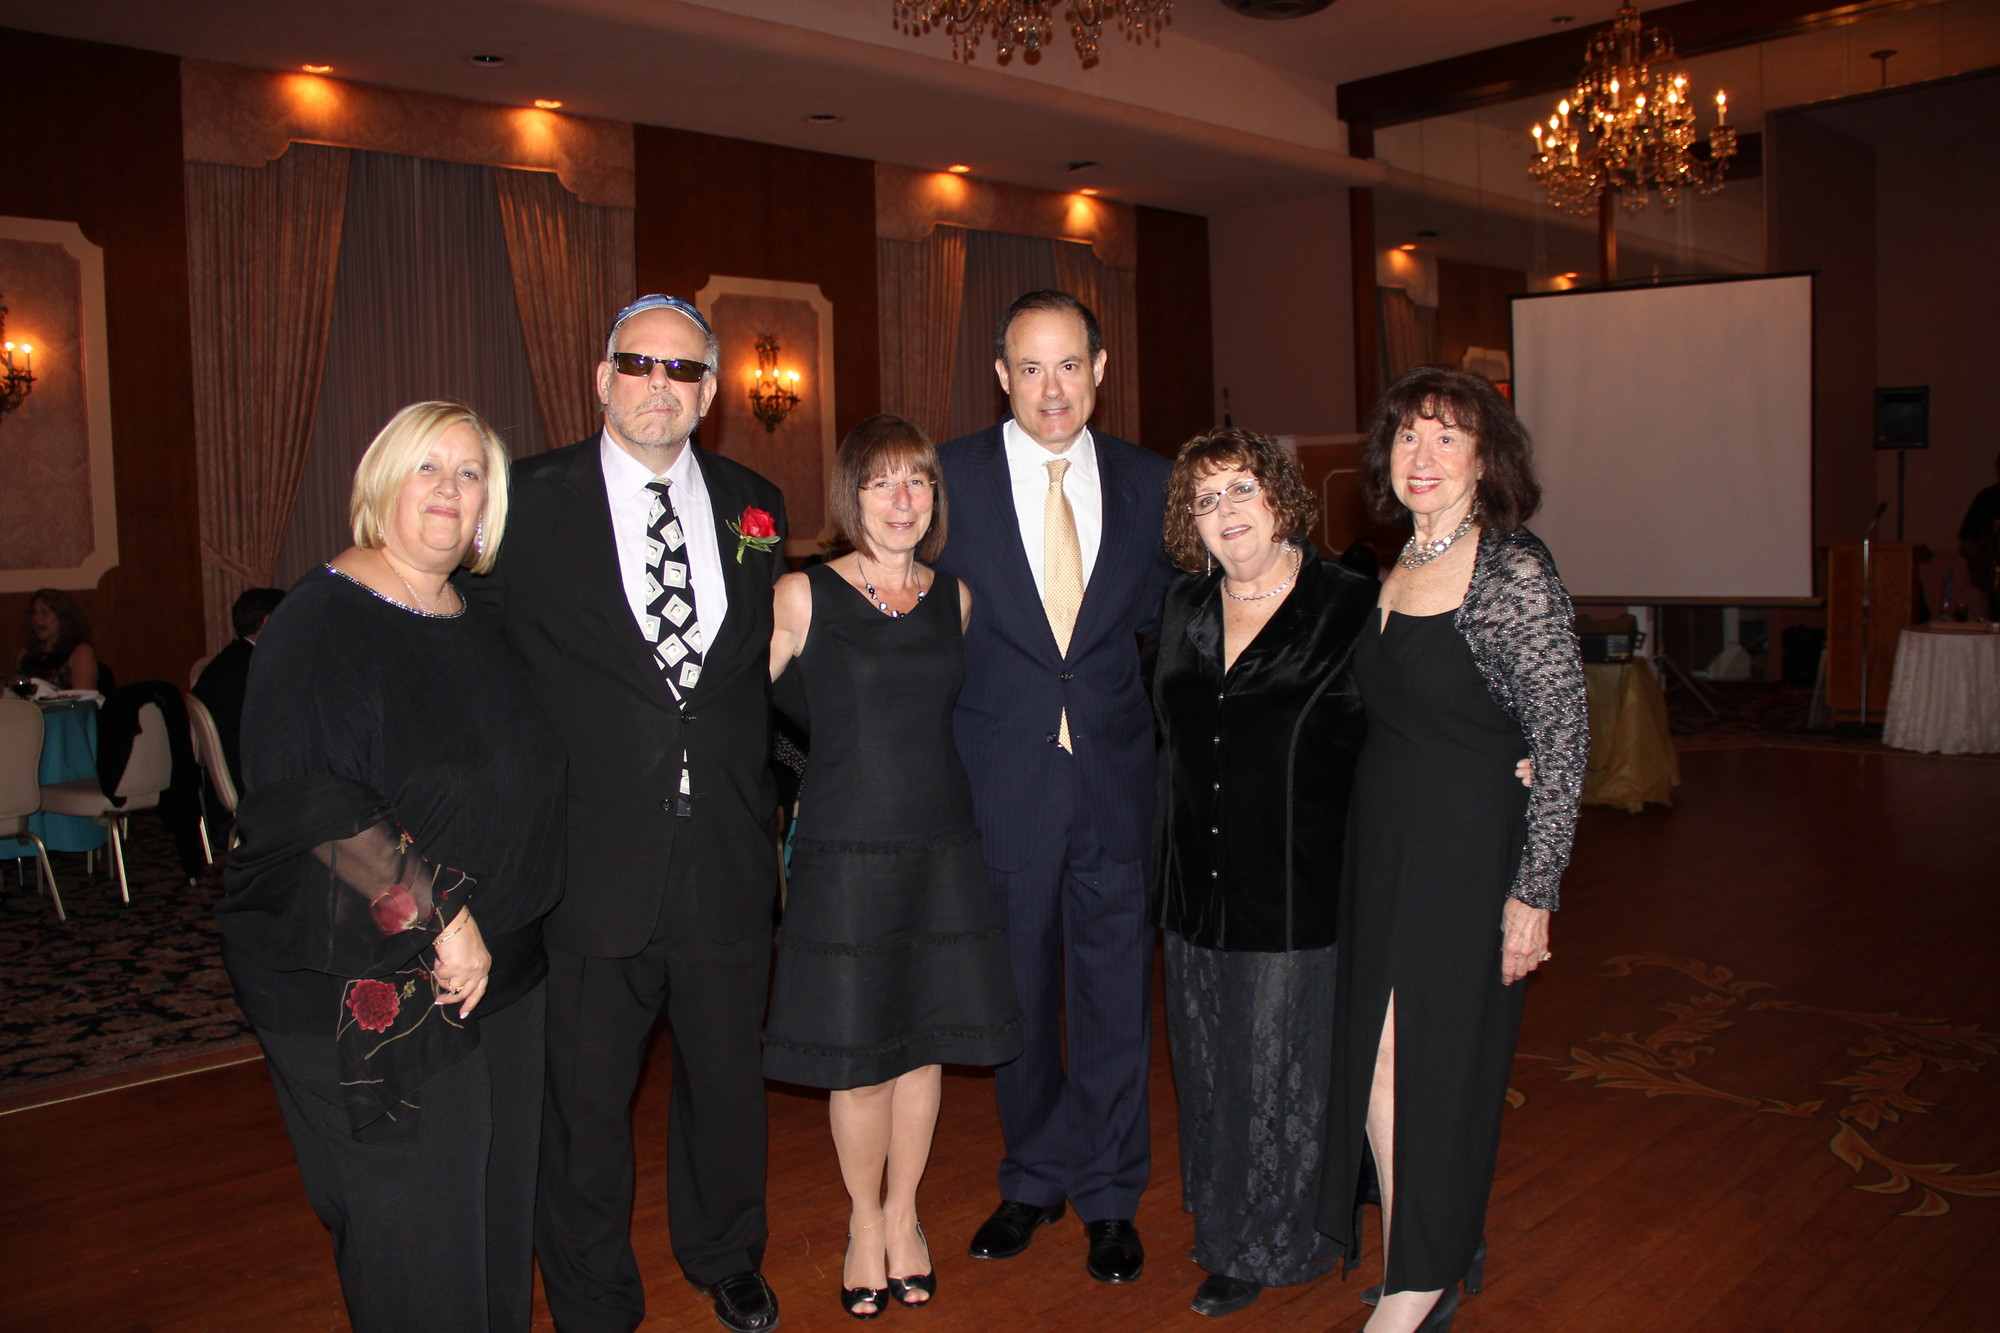 Meri Masin, left, Rabbi Marc Gruber, Renee Gruber, David Nemschuff, Gail Zerfuss, and co-chair of the fundraising committee Nina Roll.